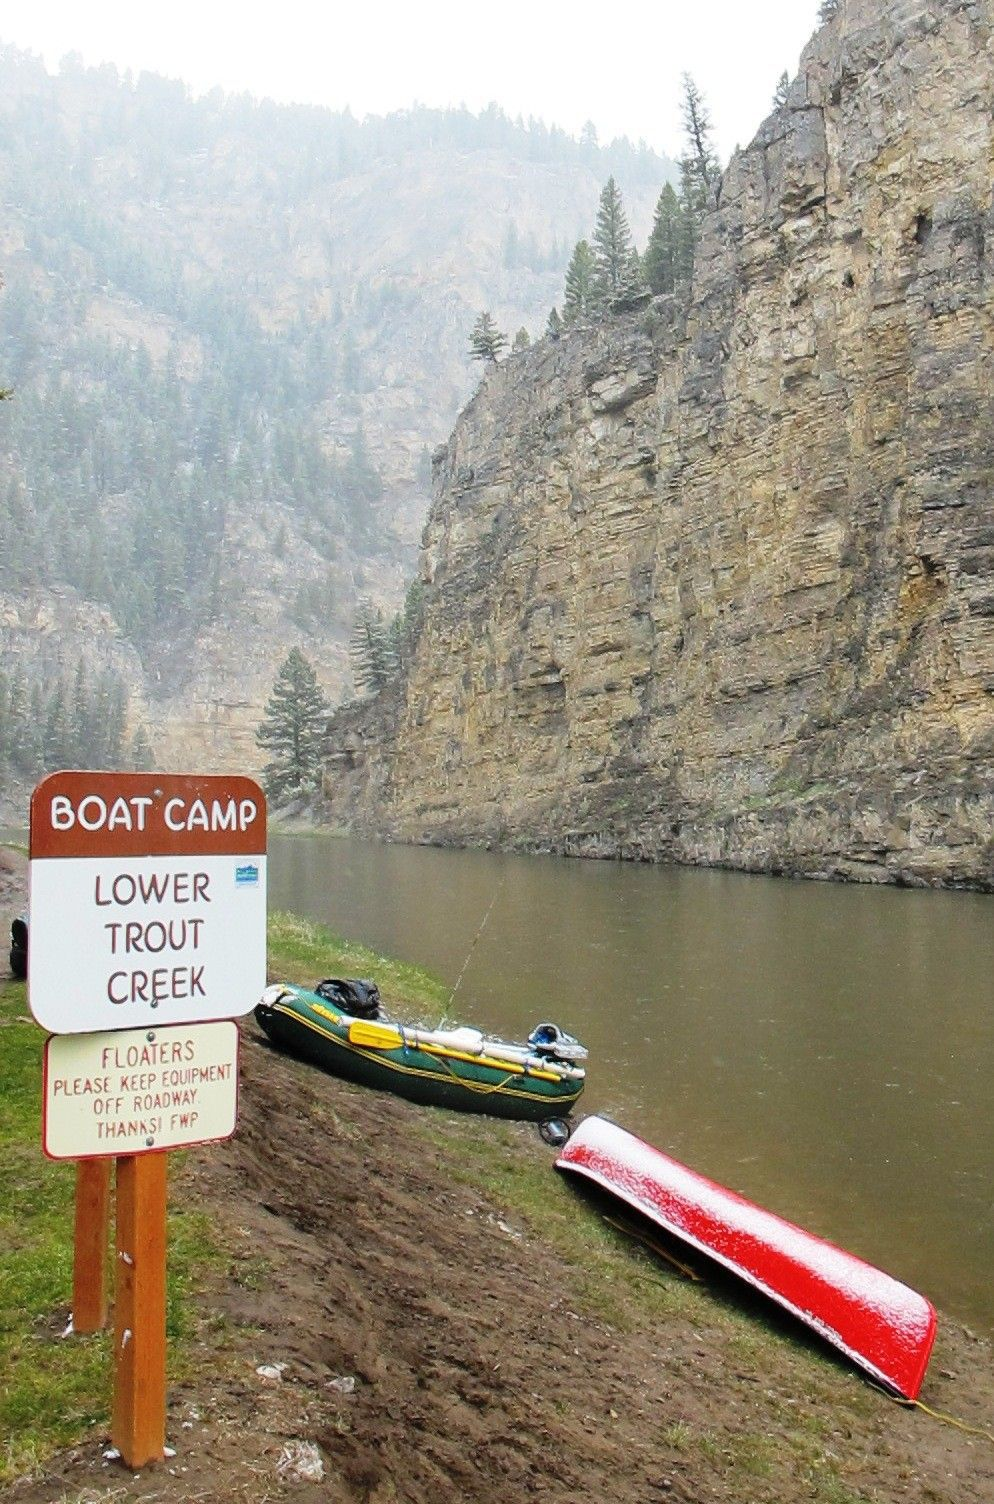 Smith river applications available starting jan 3 for Montana fish wildlife and parks drawing results